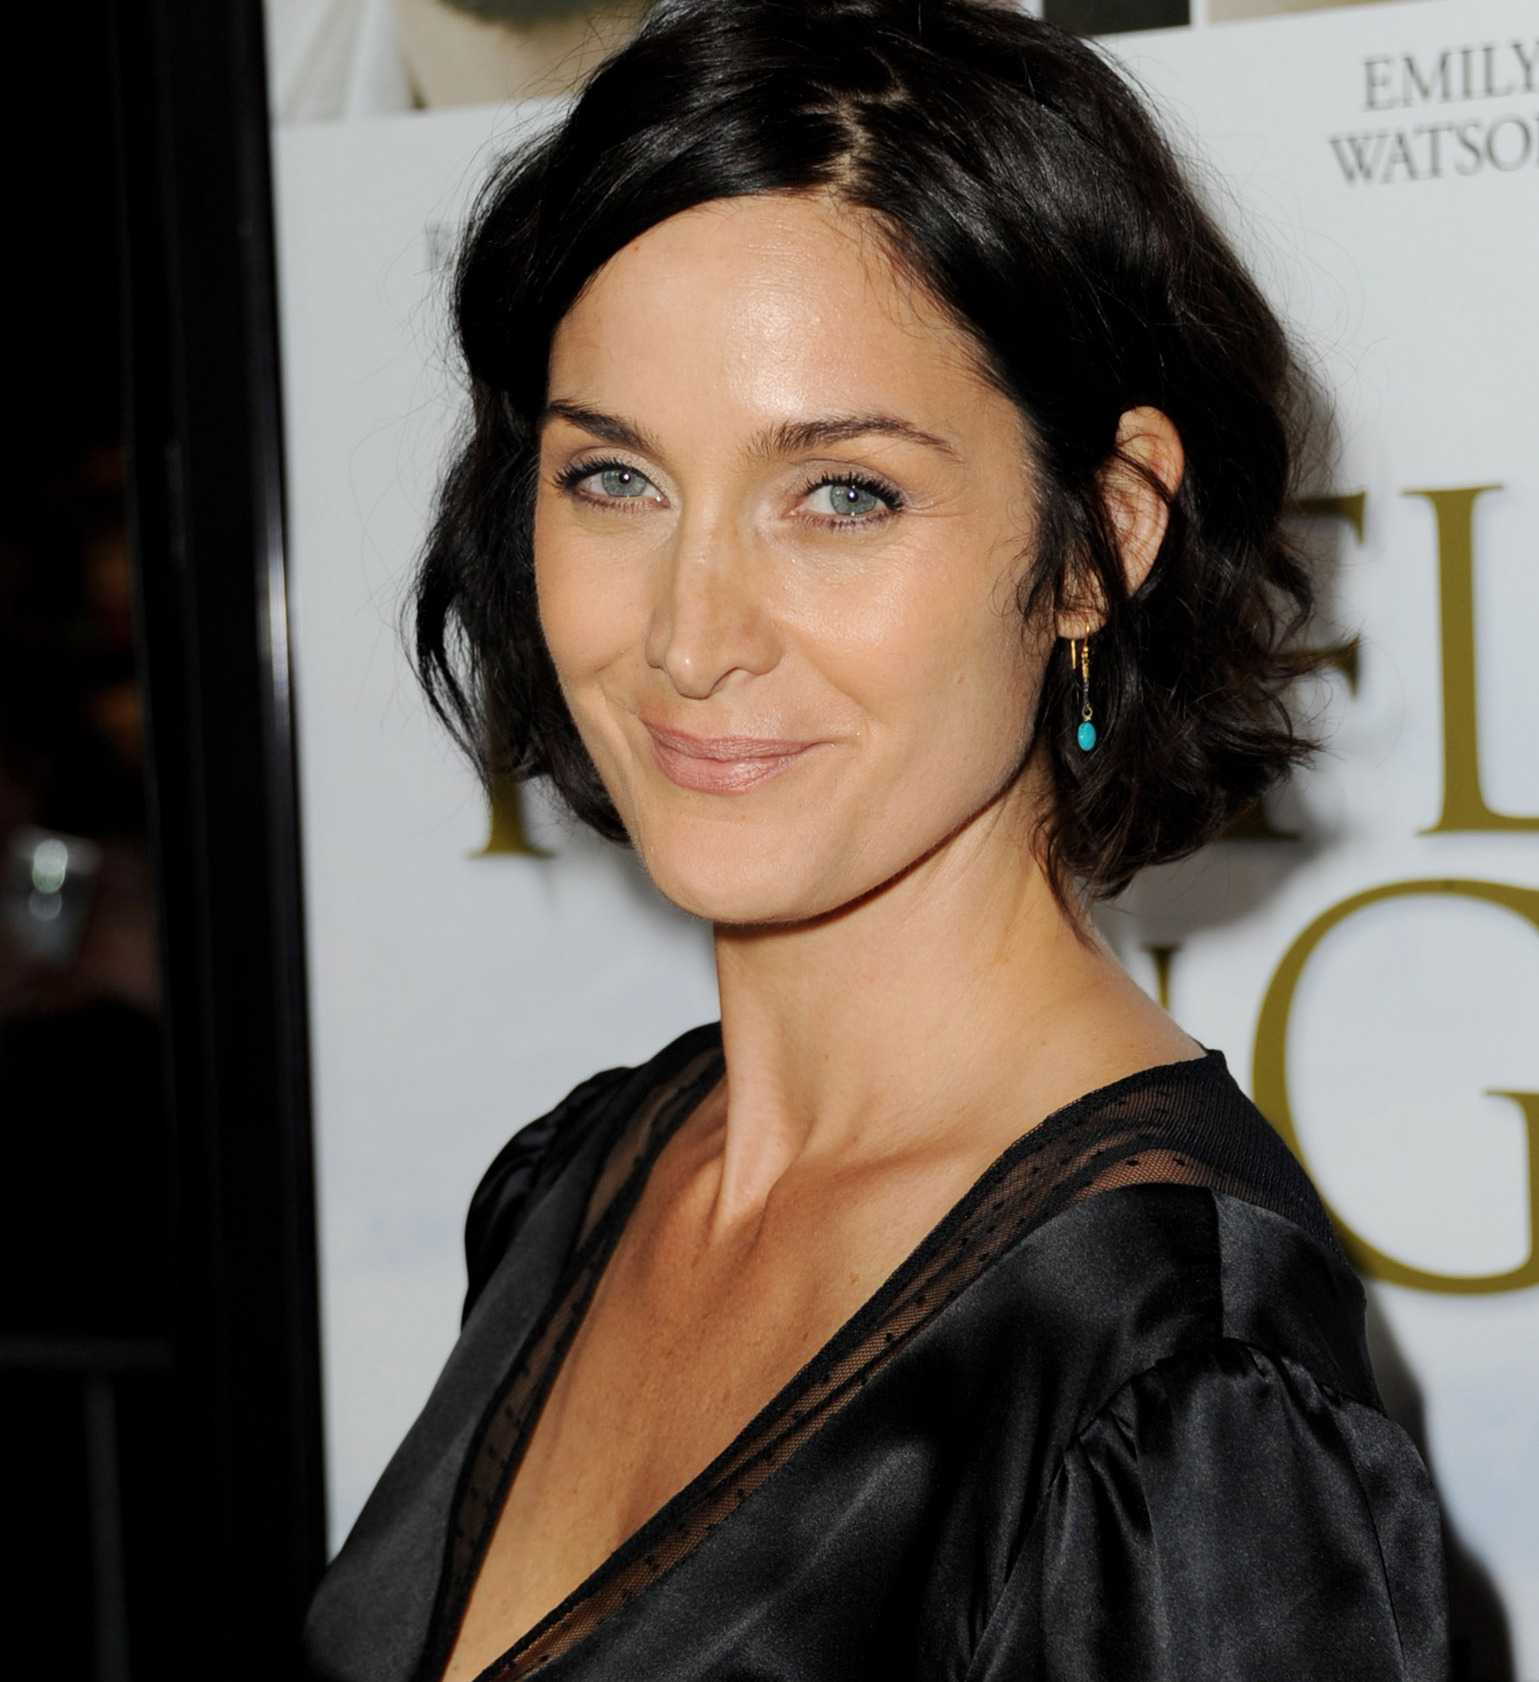 Carrie-Anne Moss Net Worth